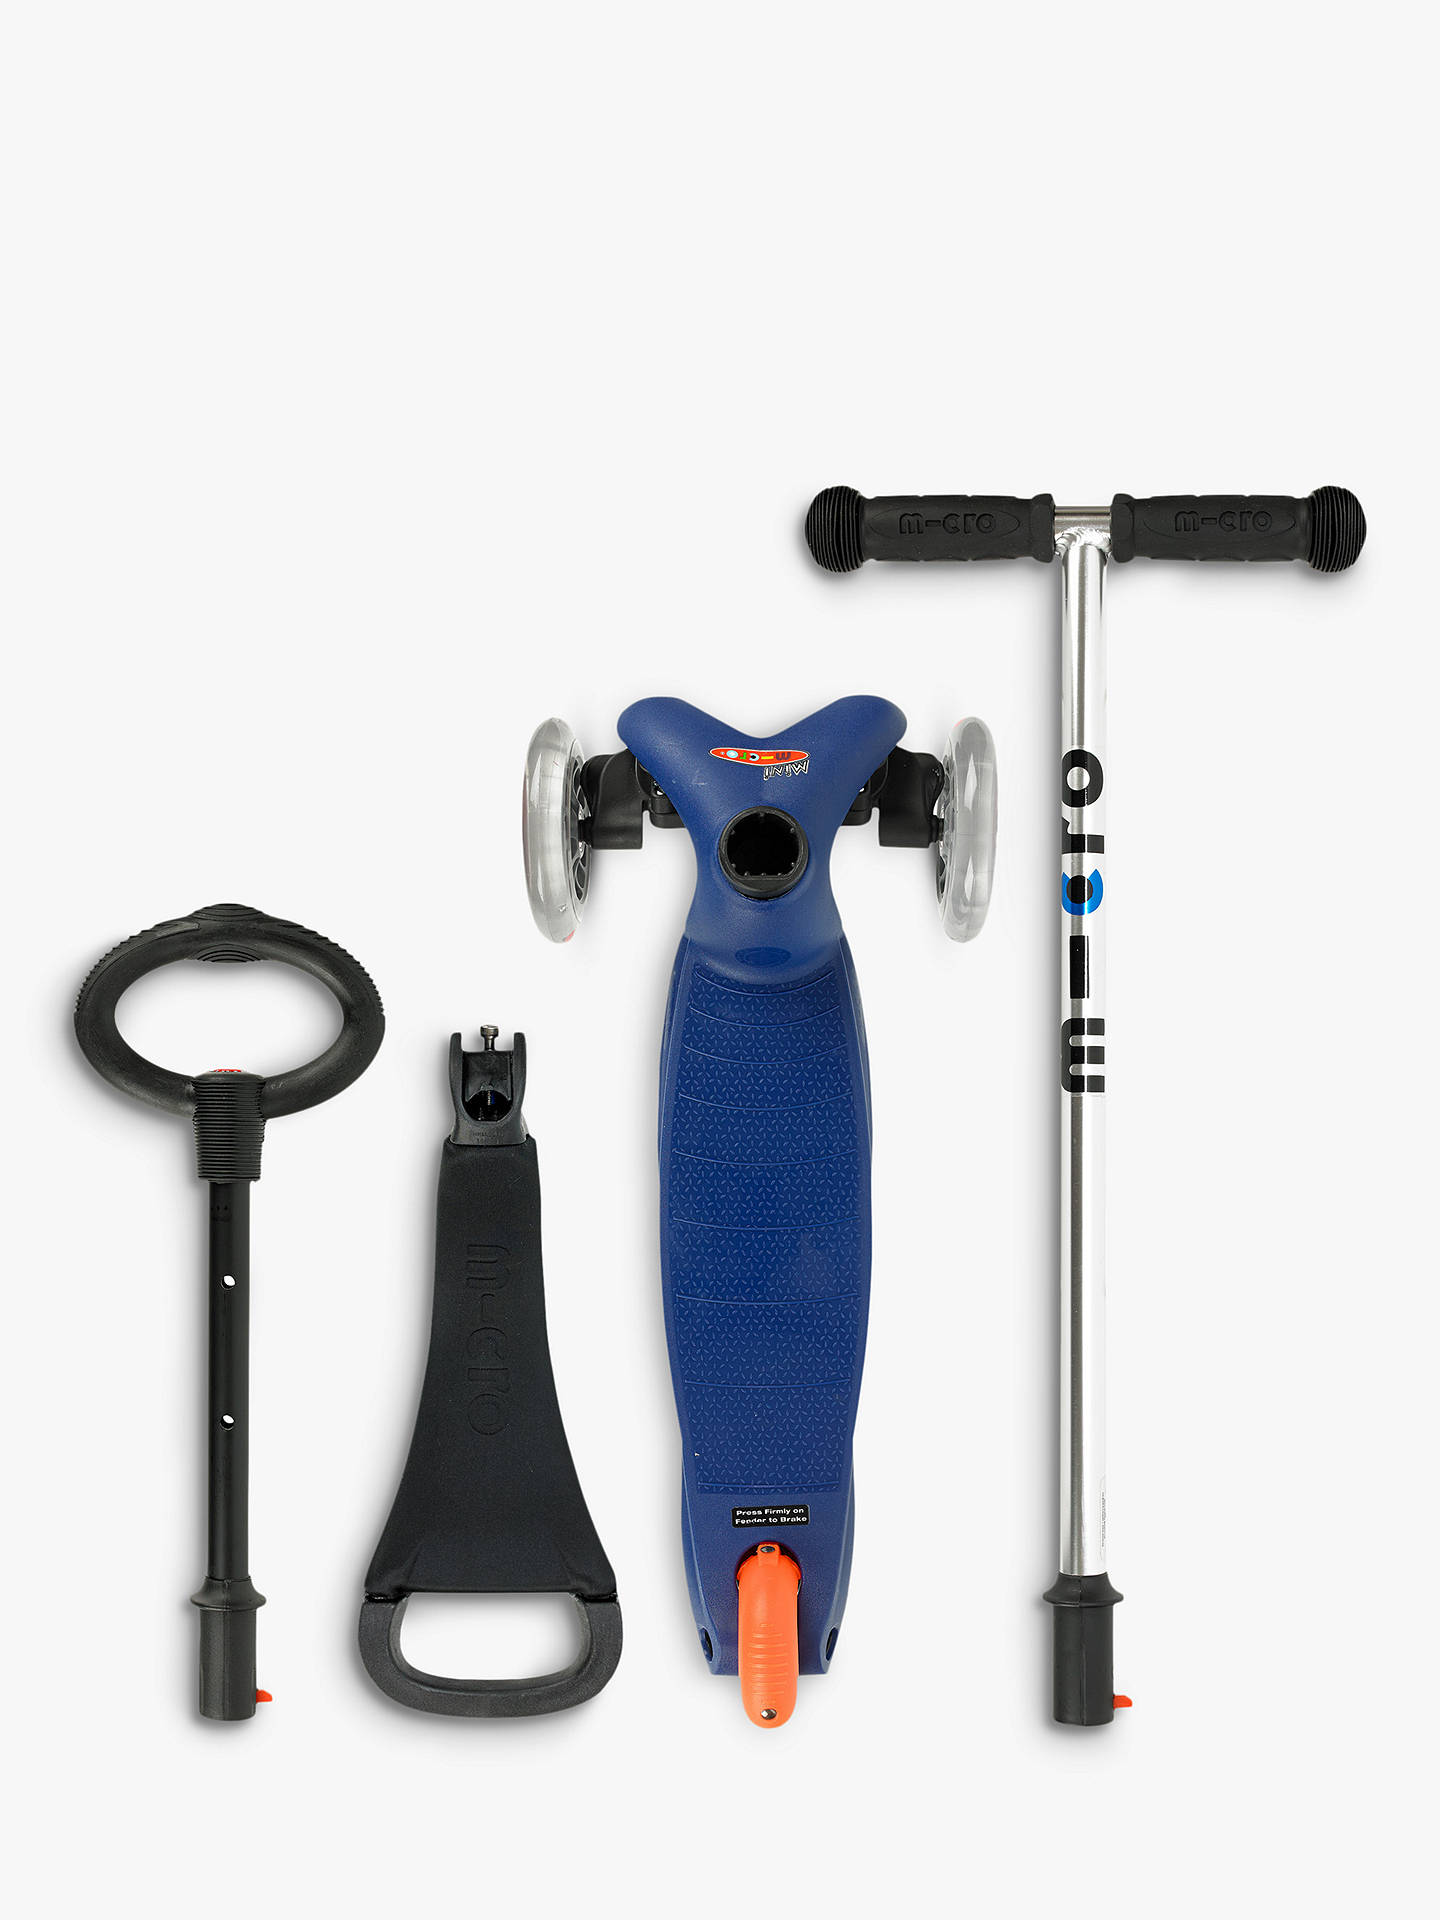 Micro Mini Micro 3 in 1 Scooter with Seat and O Bar Handle, 1 5 years, Blue